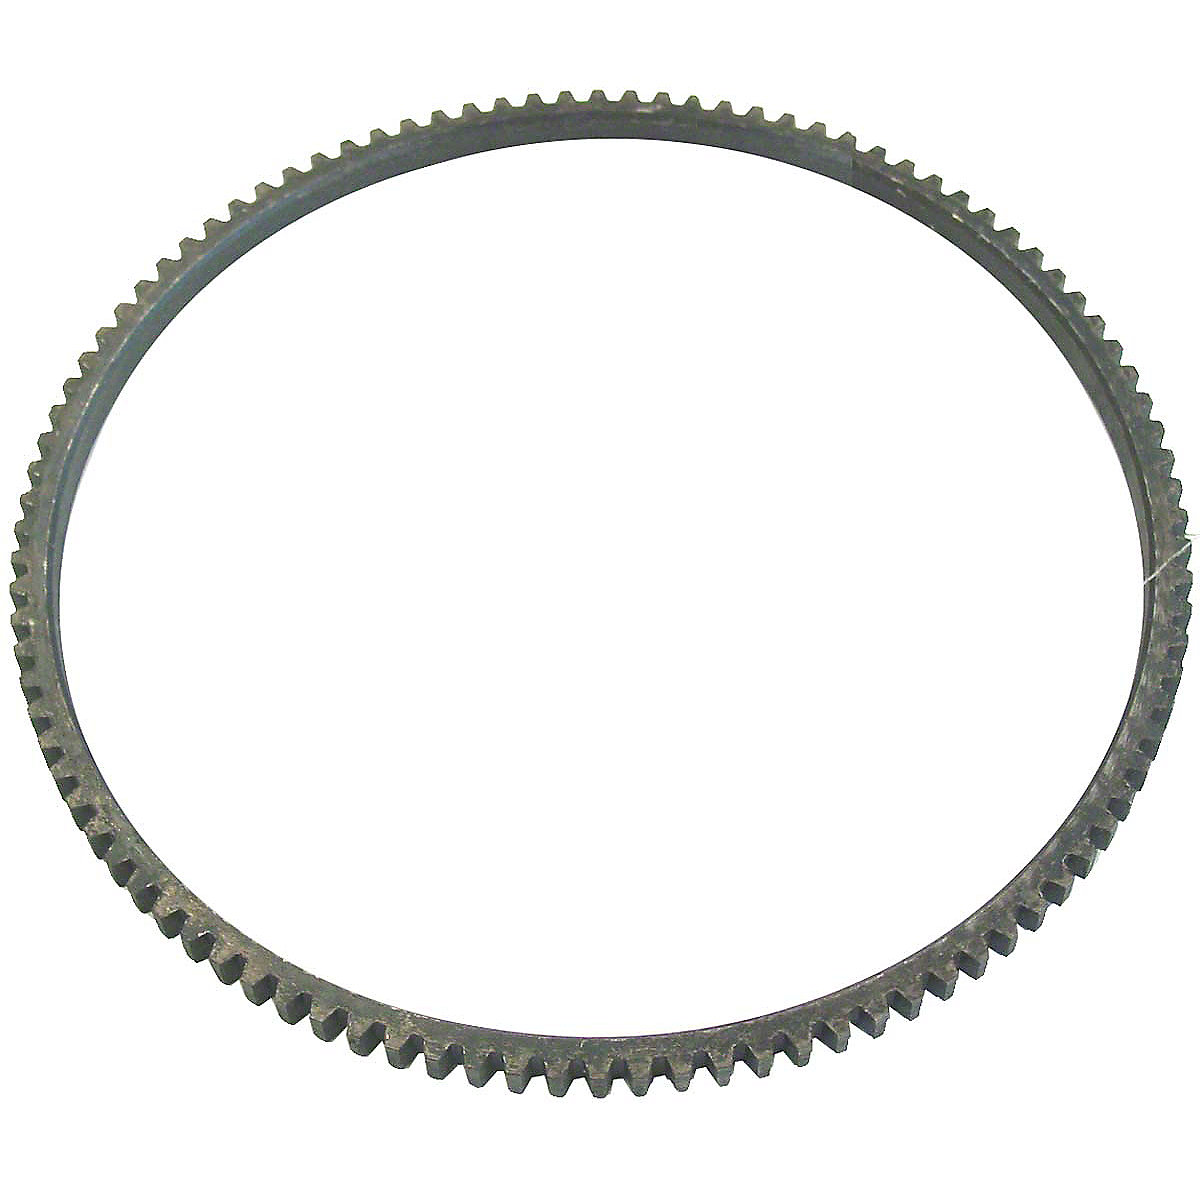 Flywheel Ring Gear For Allis Chalmers: RC, WC, WD, WD45 Gas.